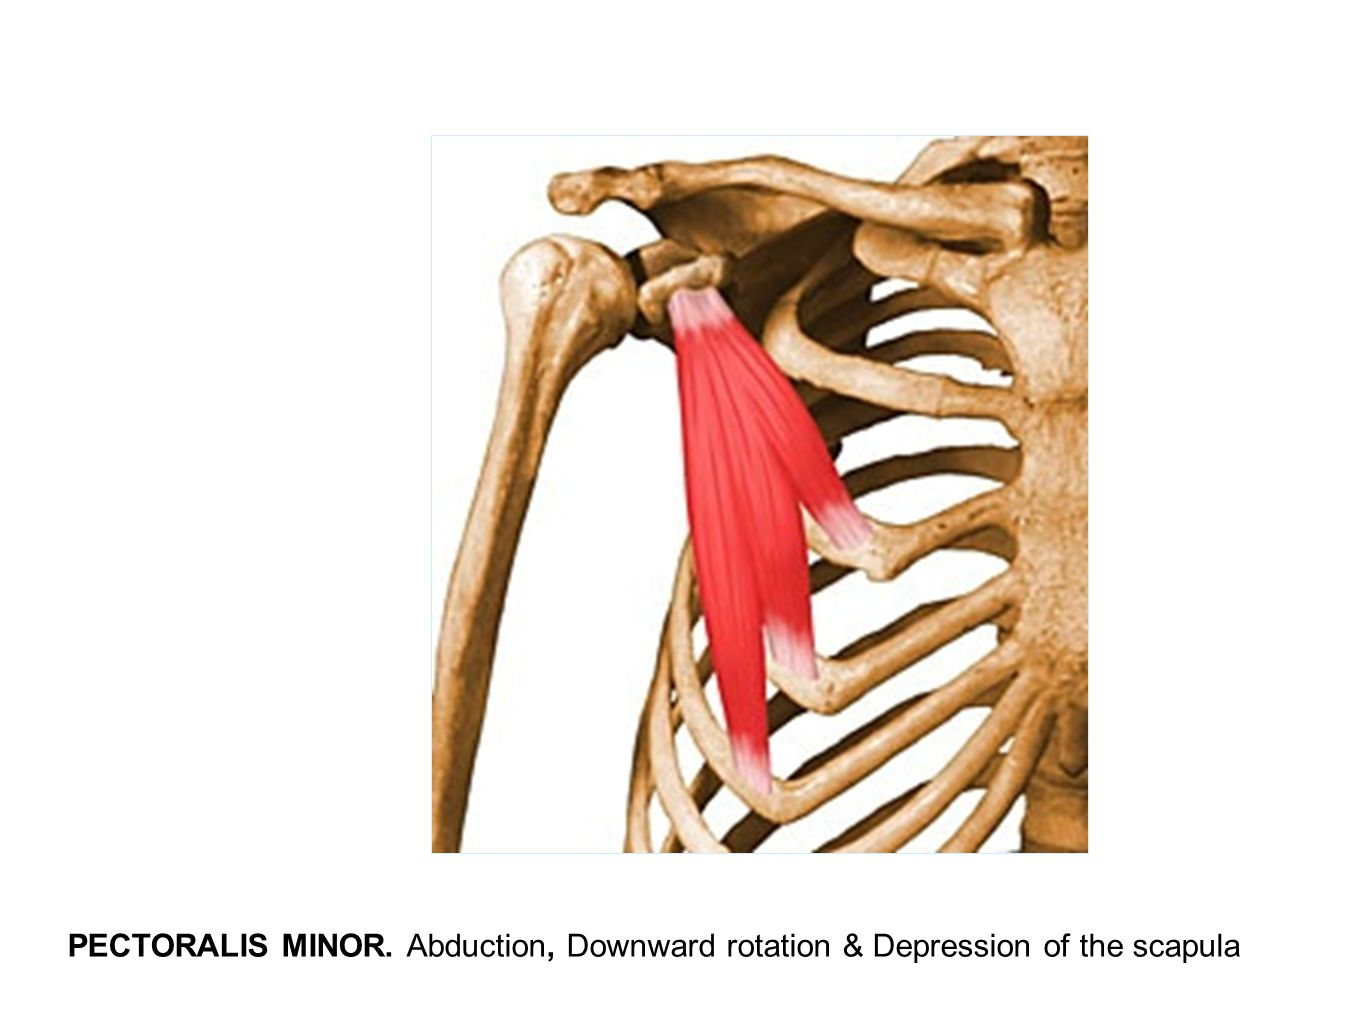 PECTORALIS MINOR. Abduction, Downward rotation & Depression of the scapula